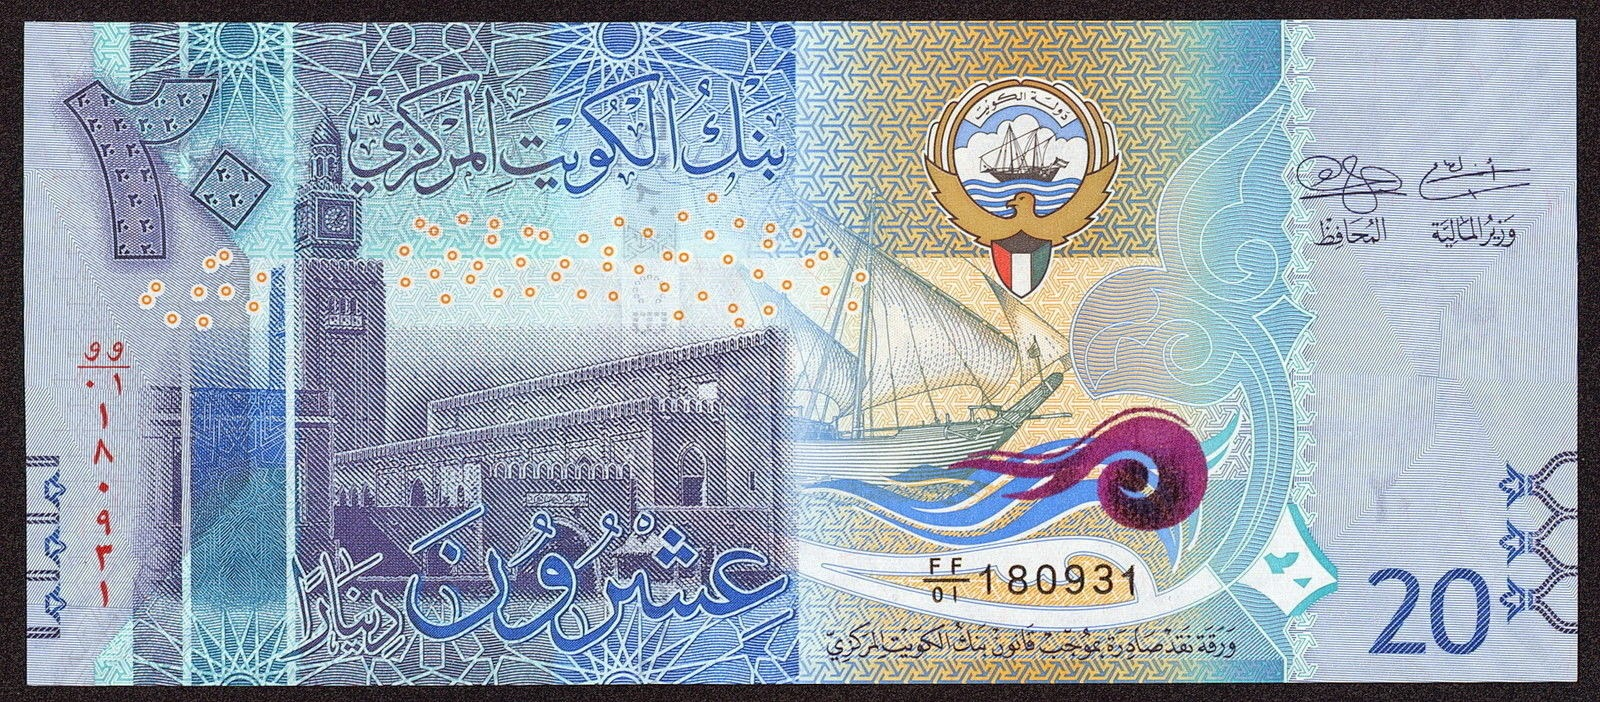 Kuwait New Banknotes 20 Dinars bank note 2014